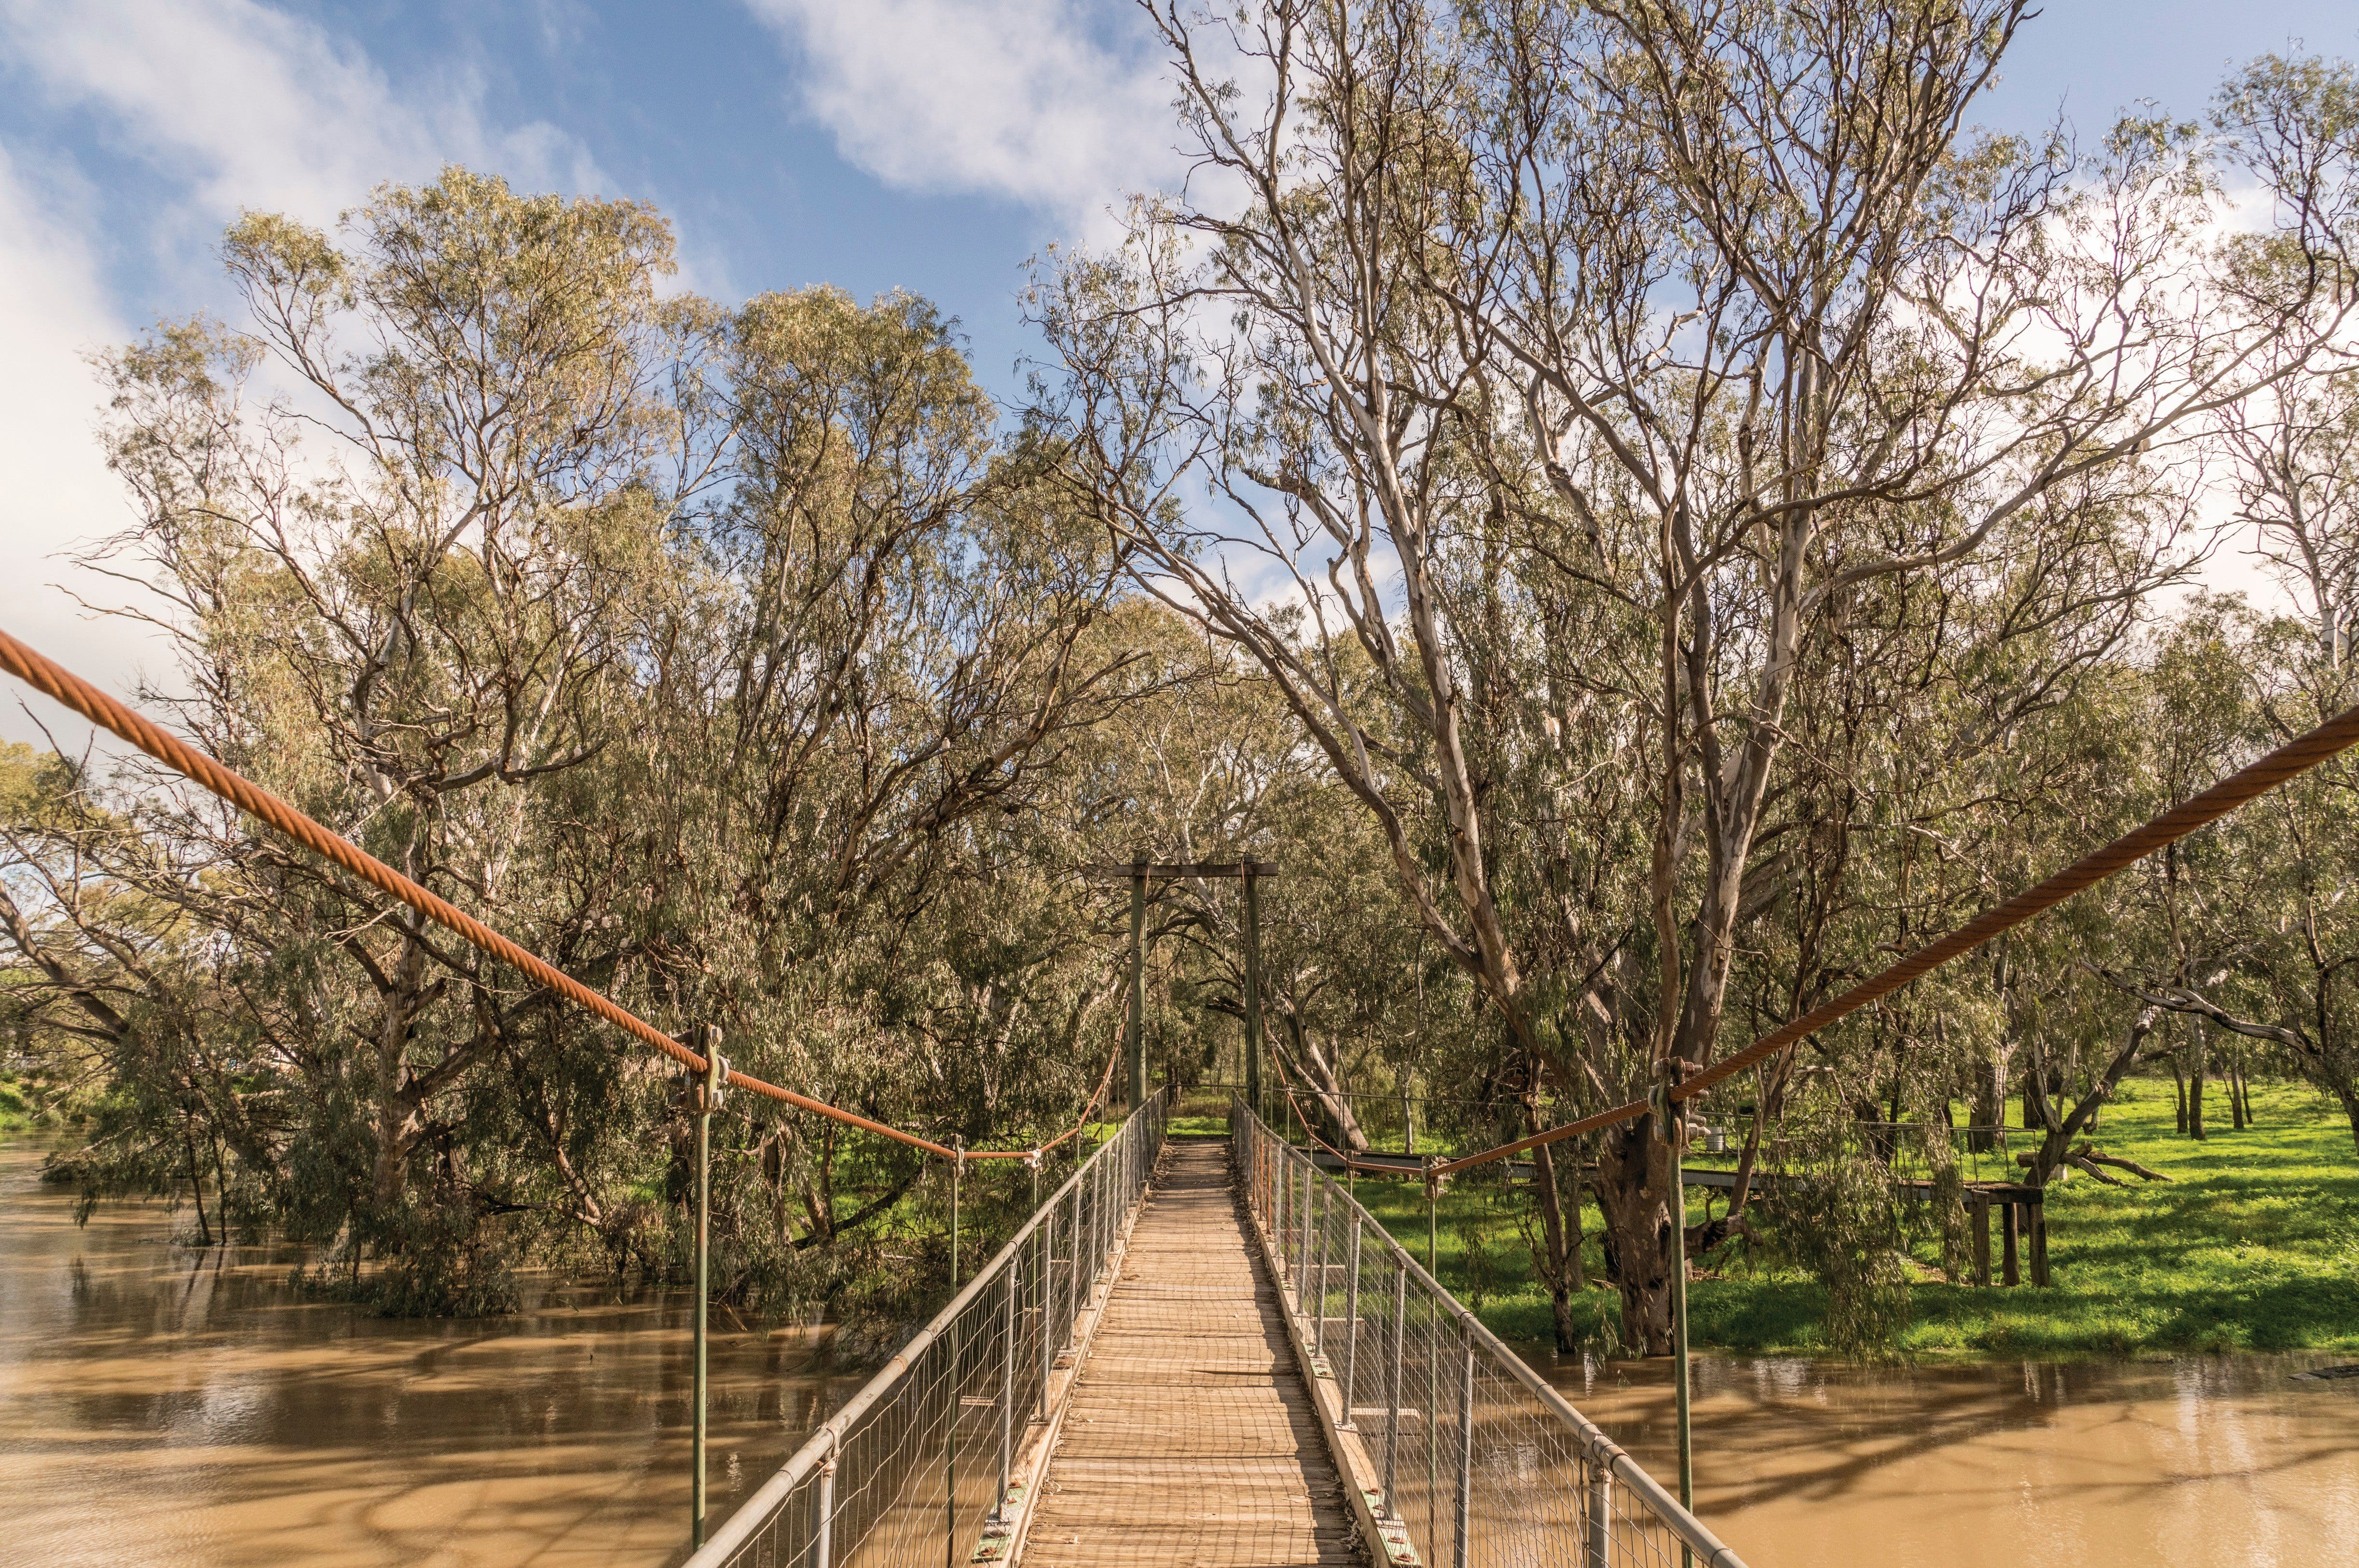 Lachlan River Swing Bridge - Tourism Brisbane